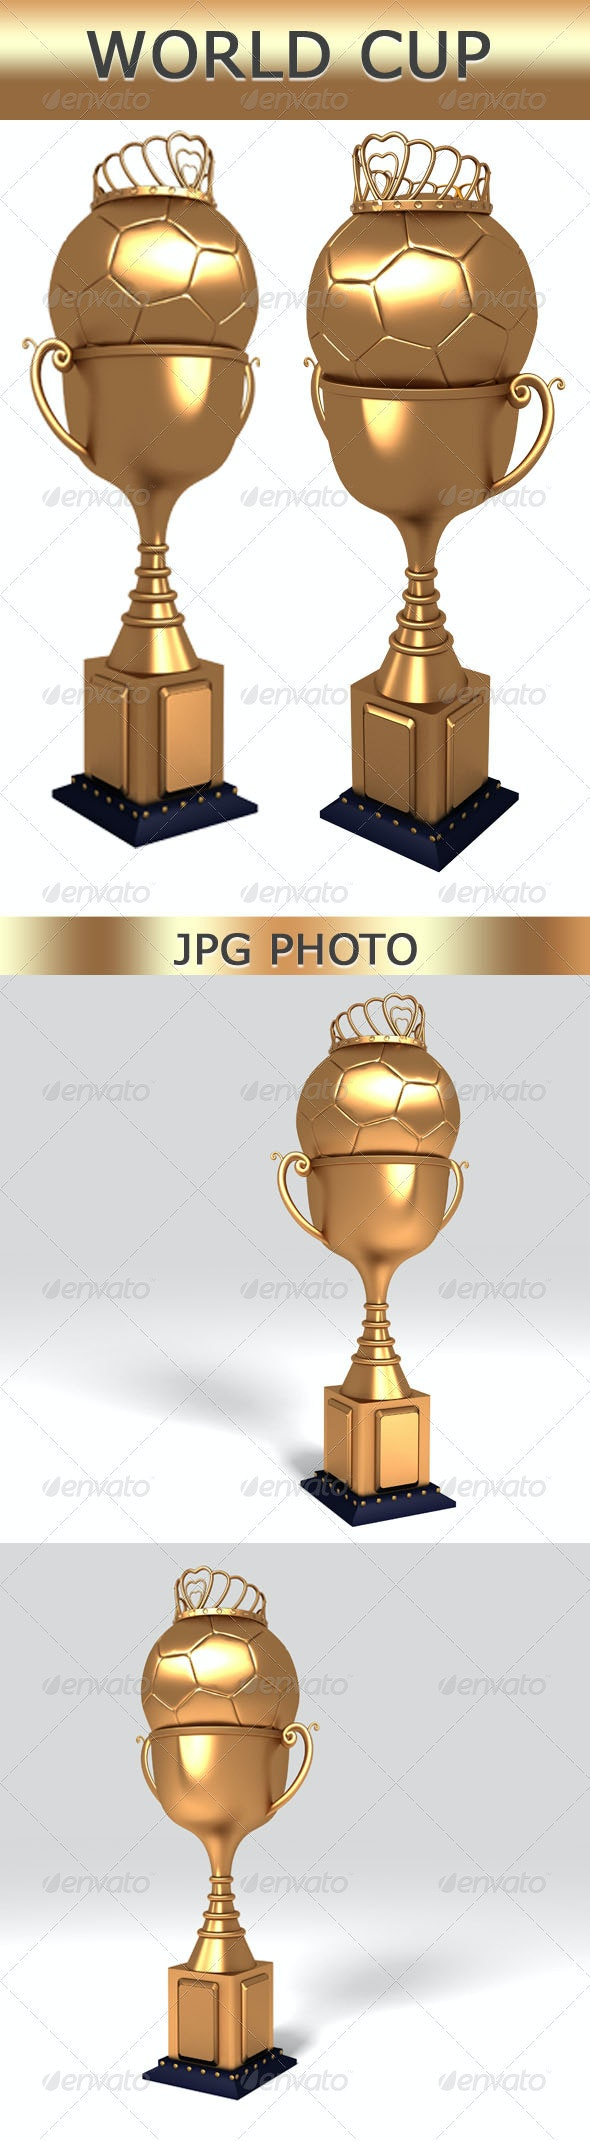 World Cup - Objects 3D Renders